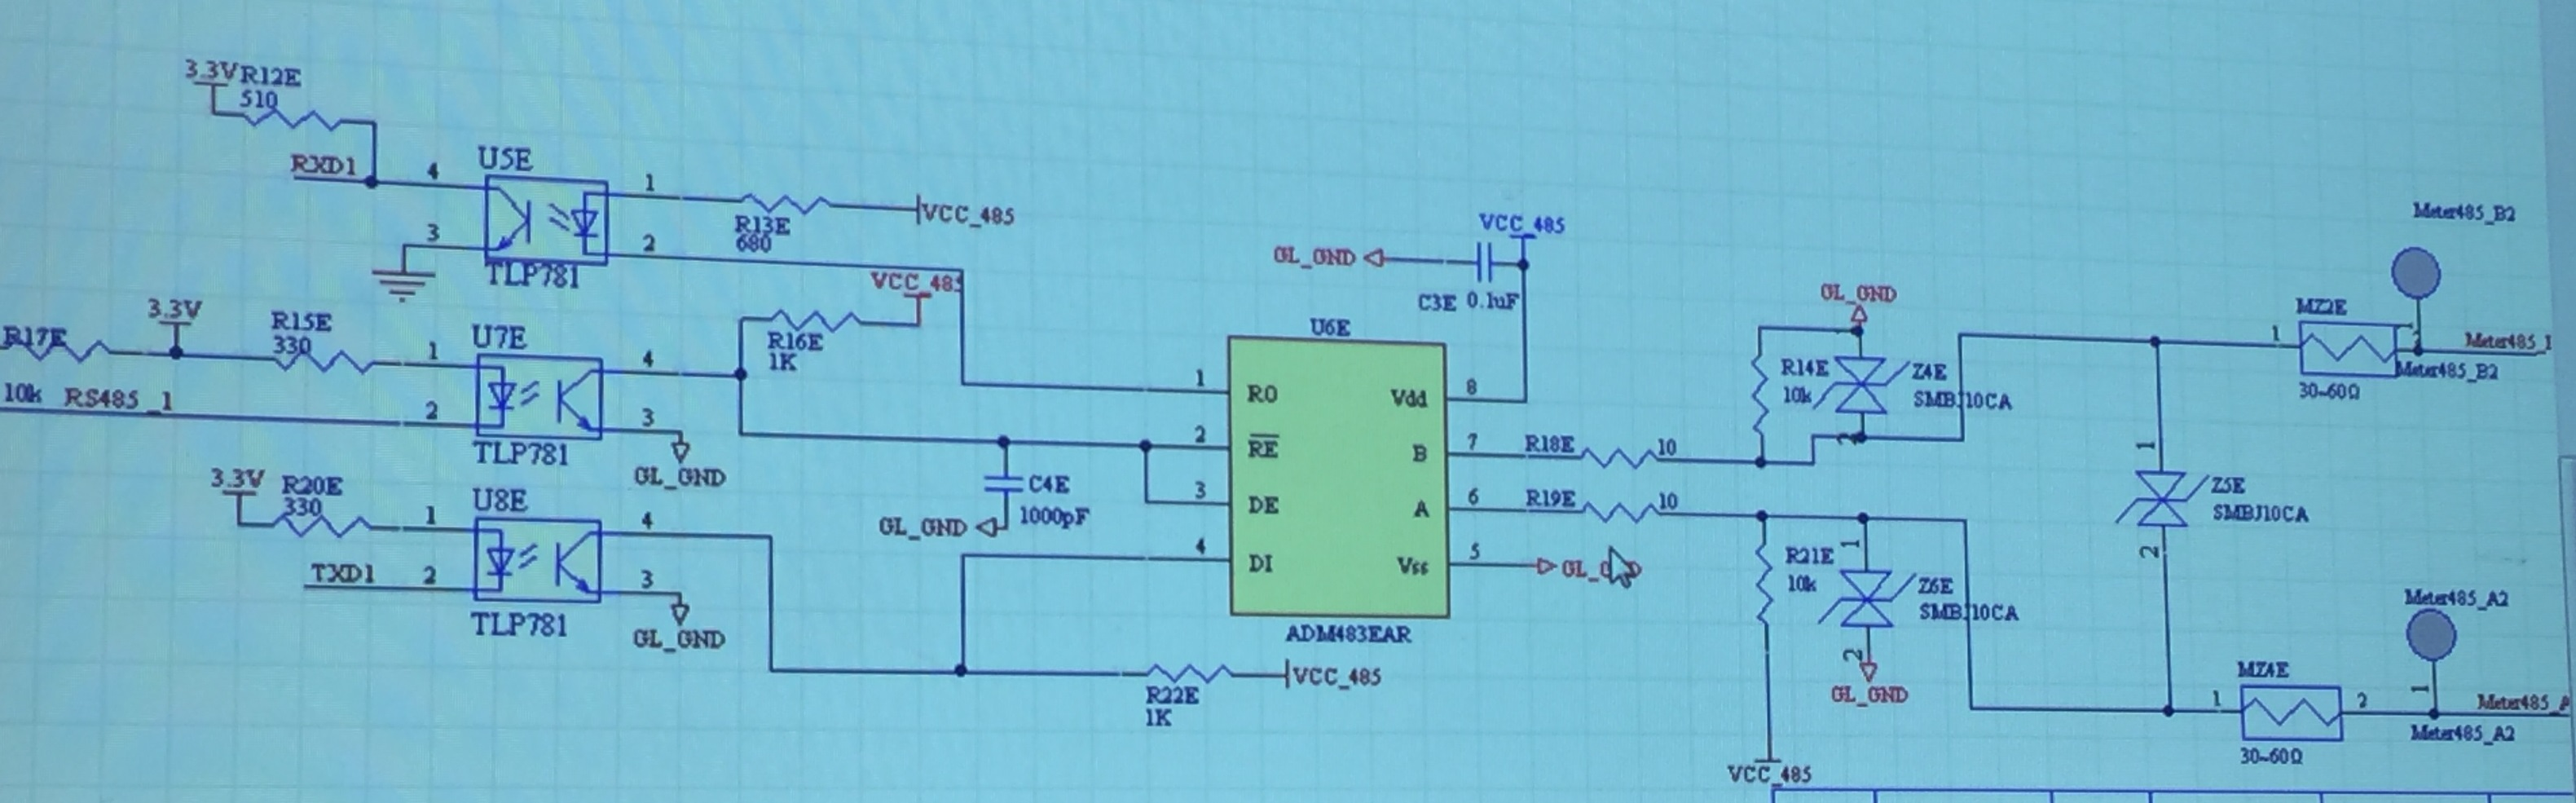 RS485 to replace Max13085 - Industrial Interface Forum - Industrial ...